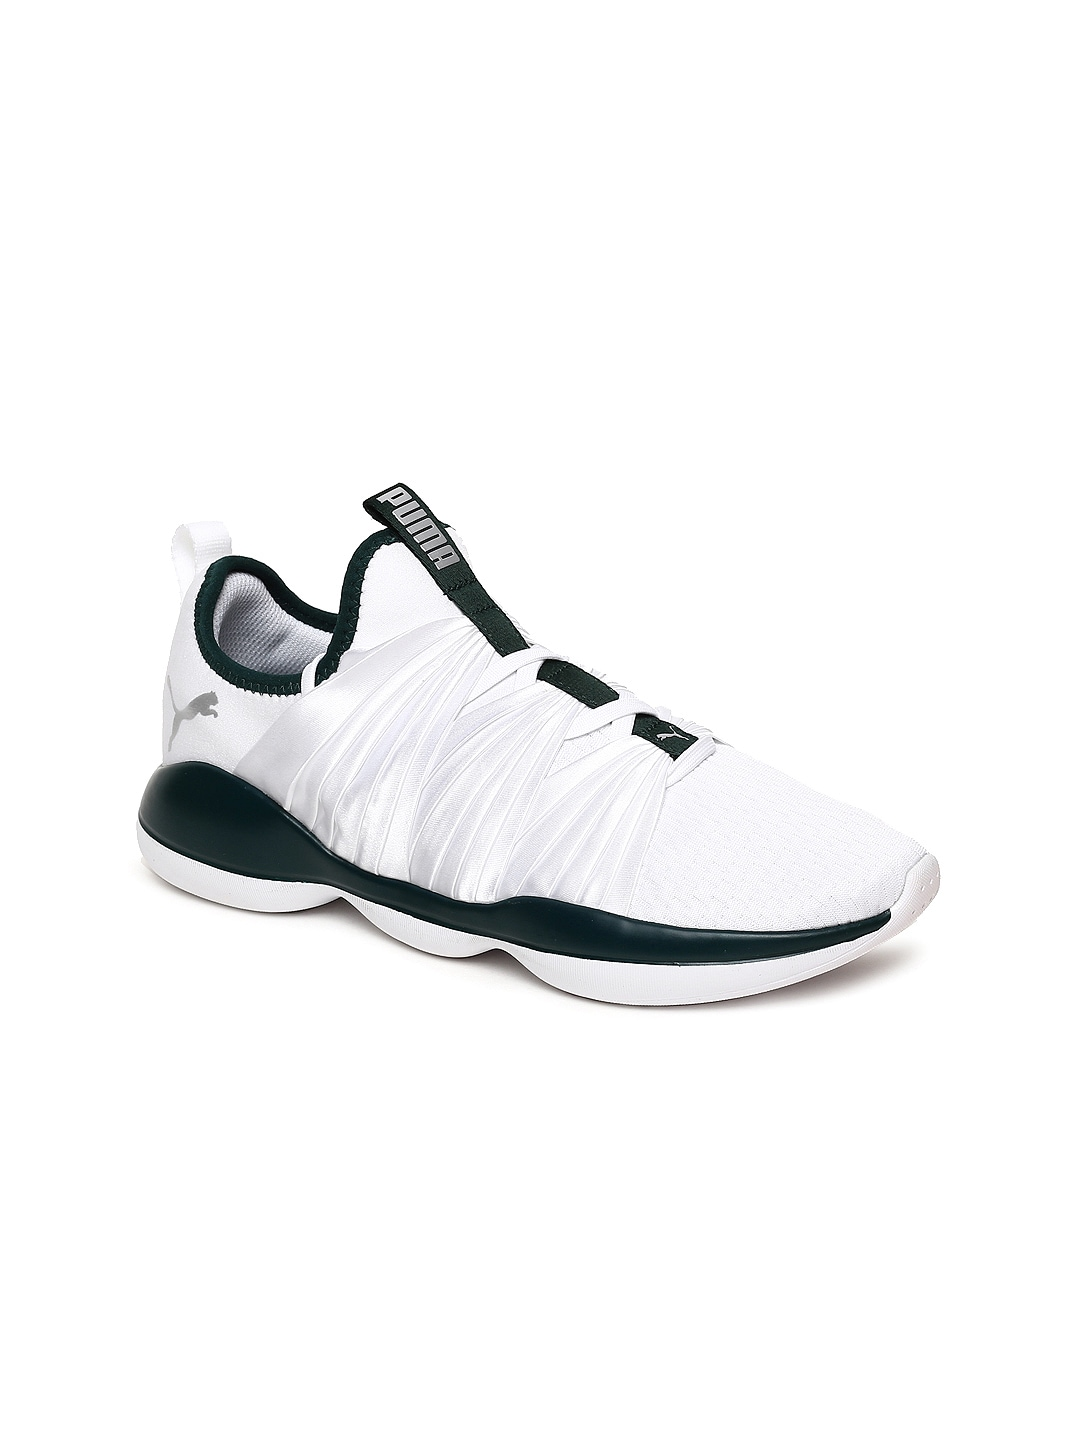 newest 1137a f9aa9 Puma Shoes - Buy Puma Shoes for Men   Women Online in India